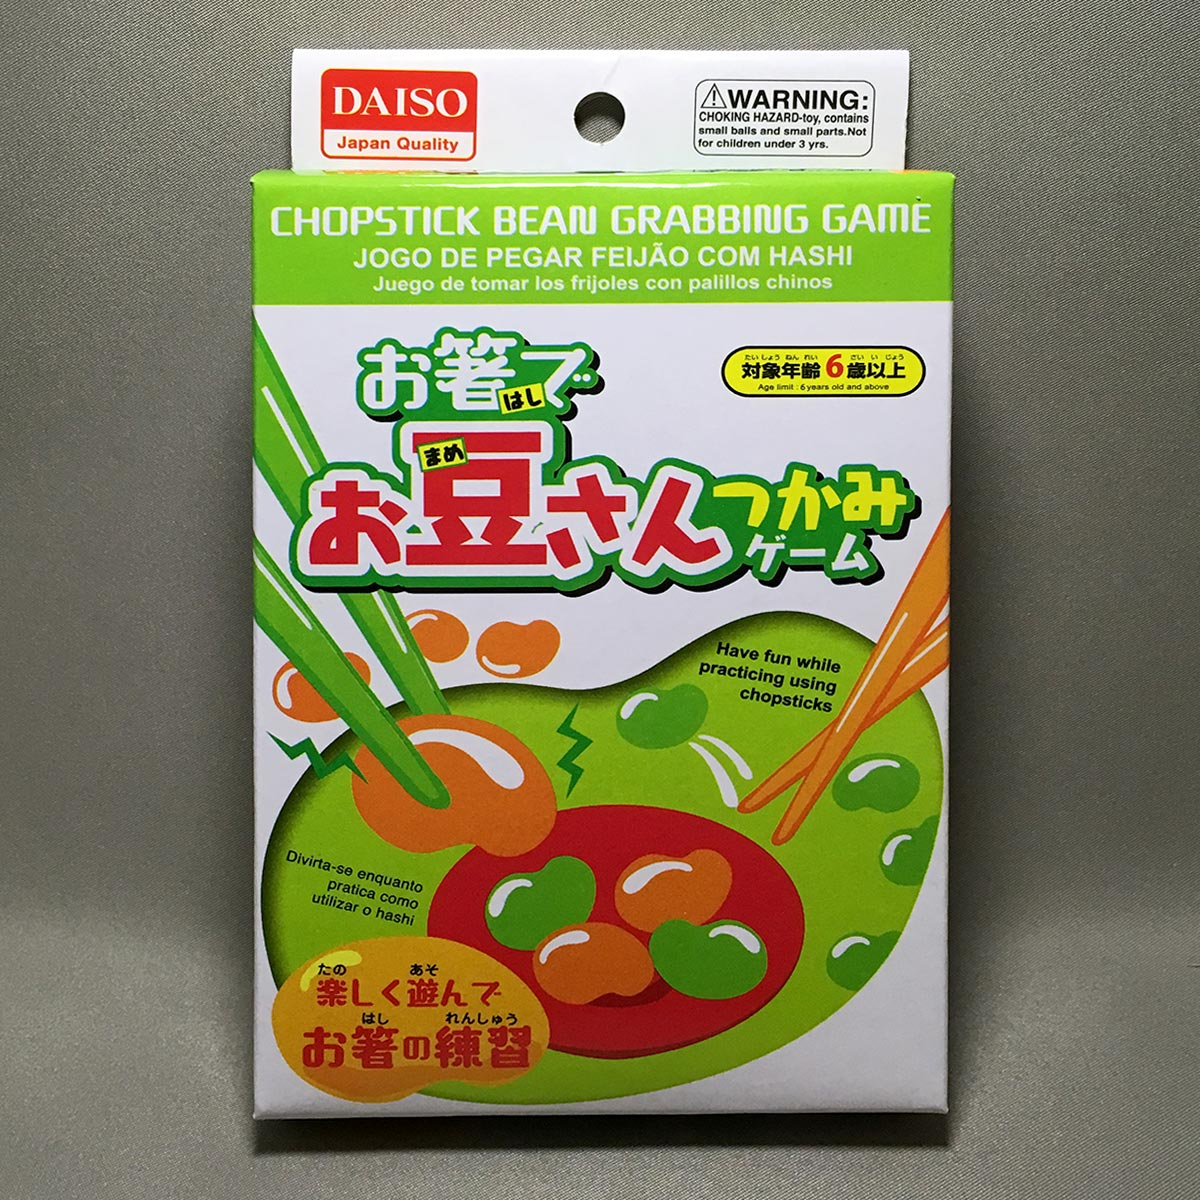 Chopstick Bean Grabbing Game - Front Packaging